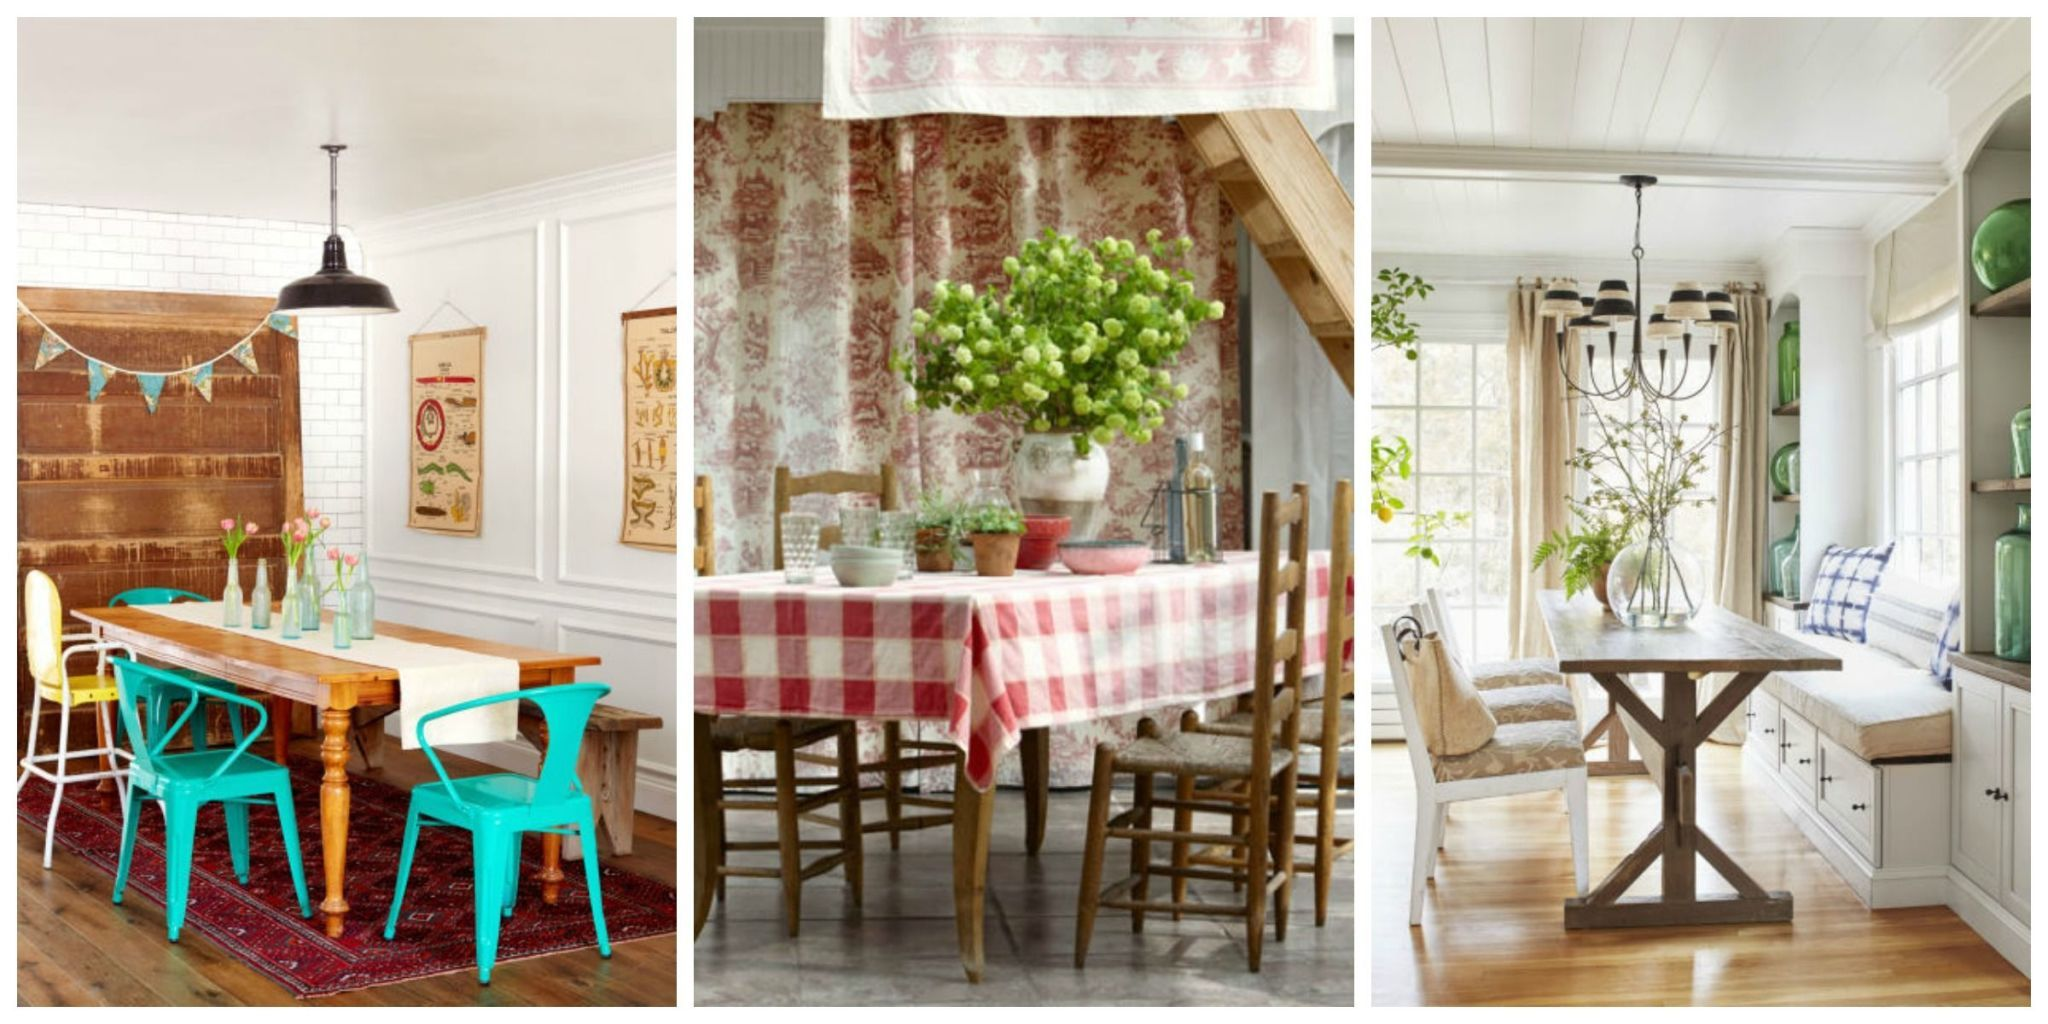 Etonnant From Floral Themes To Vintage Furniture, Our Dining Room Design Guide Will  Help You Transform Your Dining Space In No Time. Plus, Makeover Your  Kitchen, ...